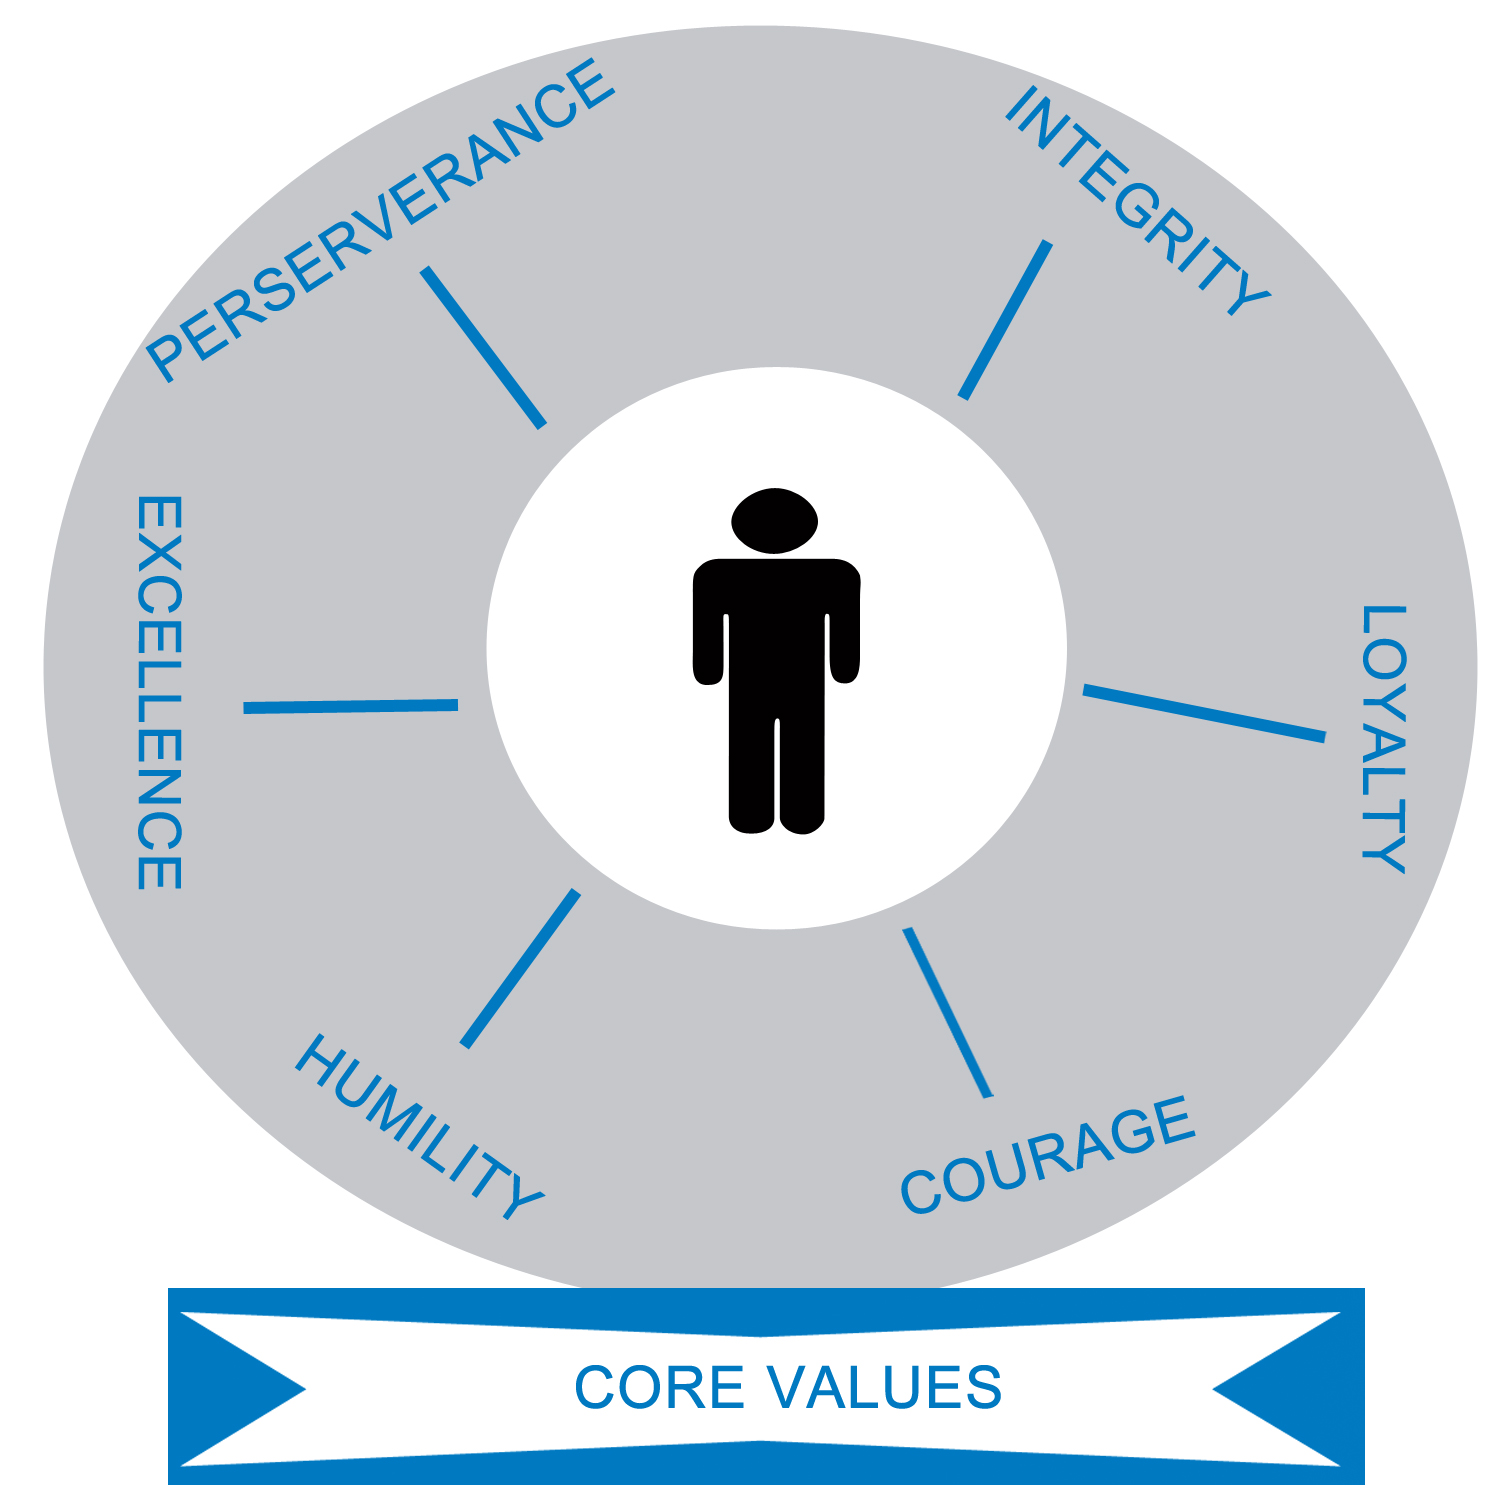 Our partners embody our core values. - Excellence:  Quality, innovation, wisdom, and achievement.Integrity:  Honor and sincerity.Loyalty:  Trust and teamwork.Perseverance:  Passion and positive attitude.Humility:  Empathy, kindness, respect, and accountability.Courage:  Confidence, leadership, and initiative.